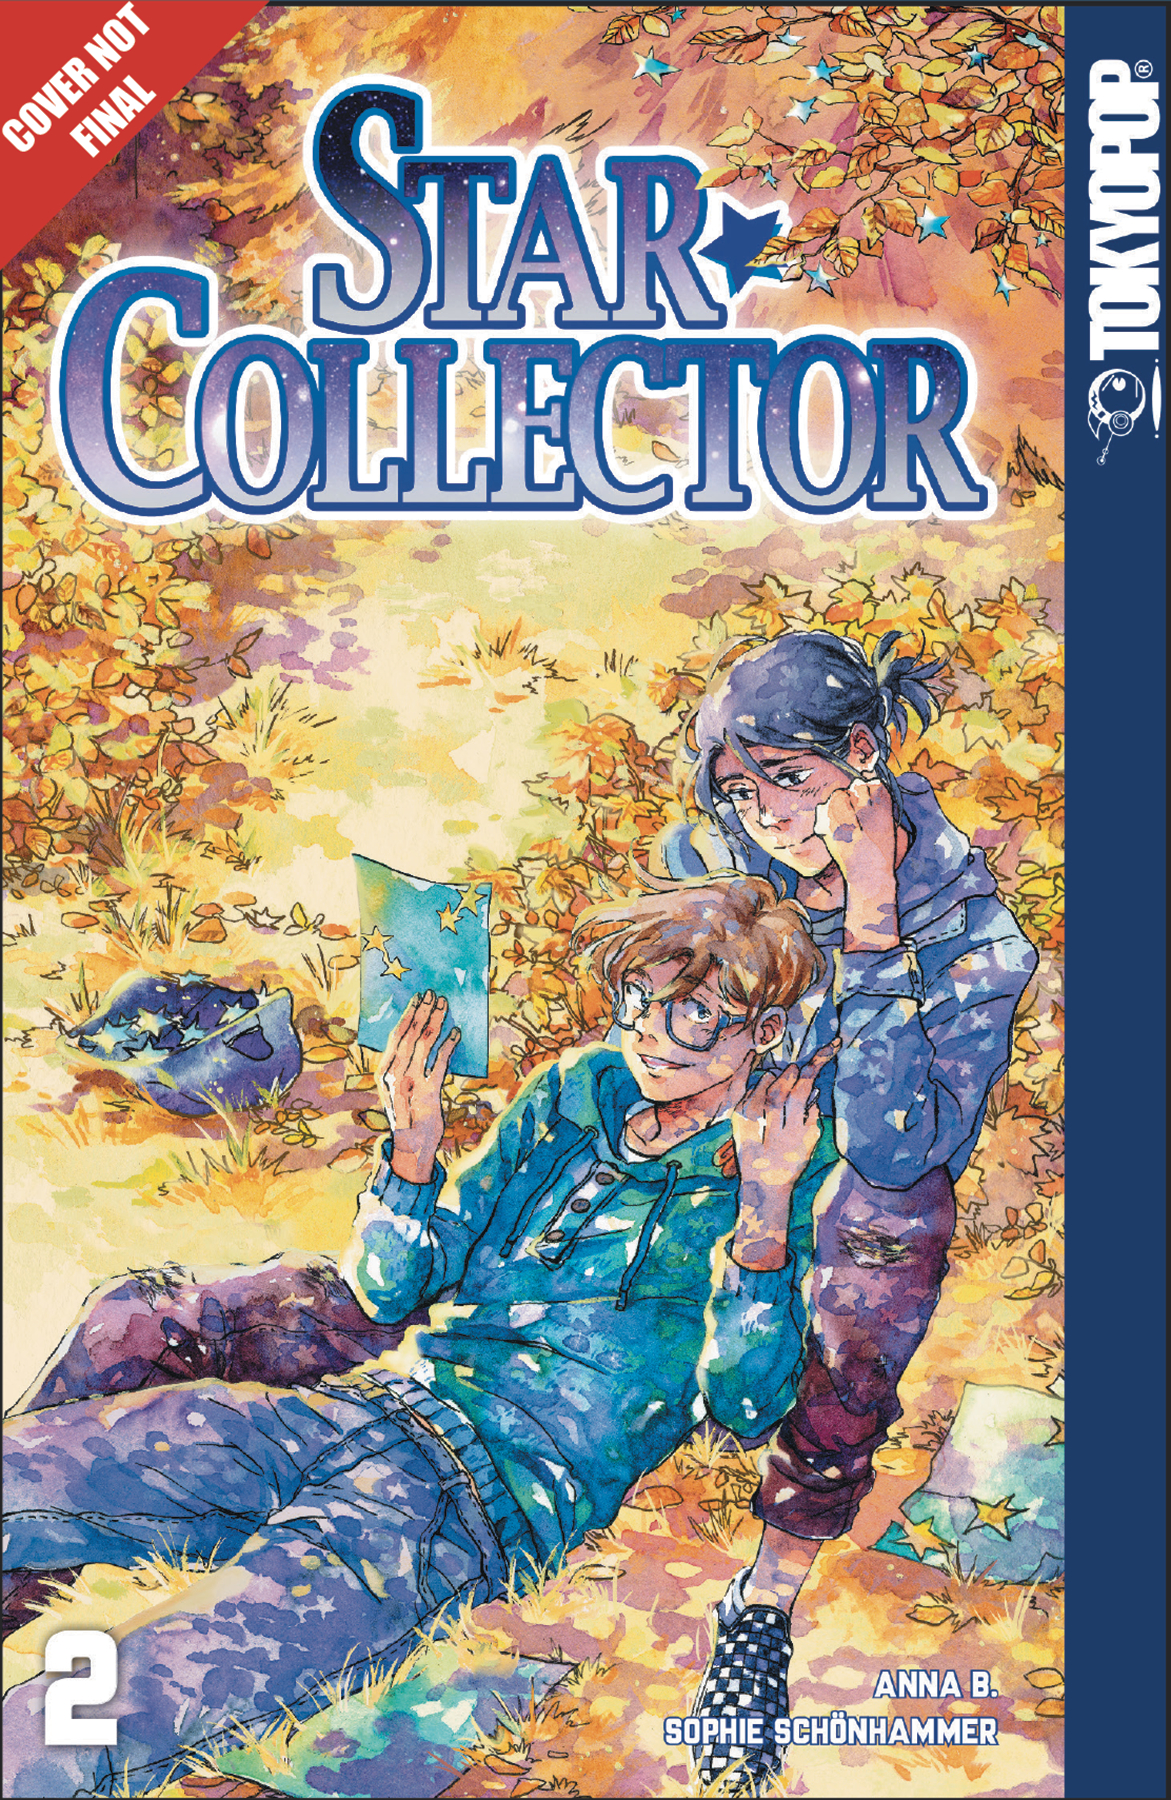 STAR COLLECTOR MANGA GN VOL 02 (JAN192260) (MR)